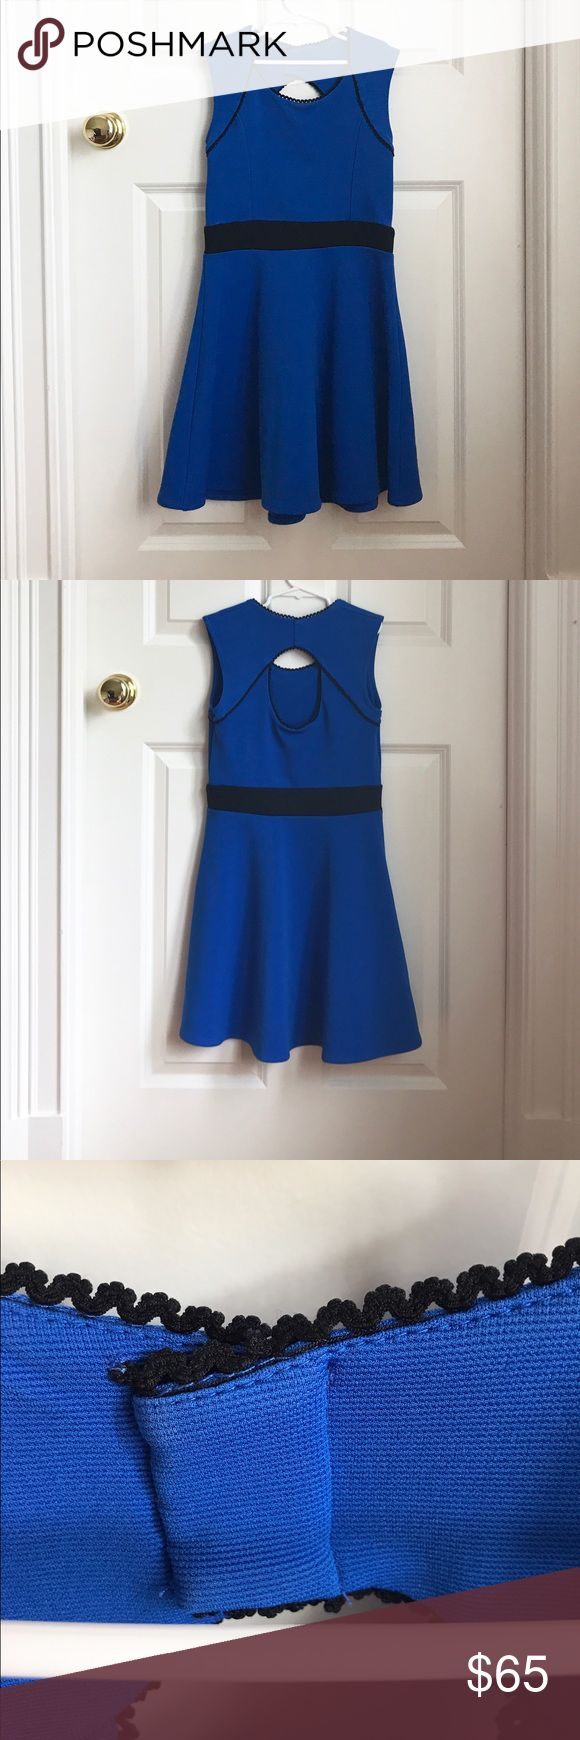 Royal Blue Sally Miller Girls Dress Really cute Sally Miller royal blue dress for girls in size L (12). It has a cute cut out in the back! This dress is in great condition and is made of 95% polyester and 5% spandex. It has been seemed at the neckline but it can easily be taken out! This dress is no longer in stores or online. Sally Miller Dresses